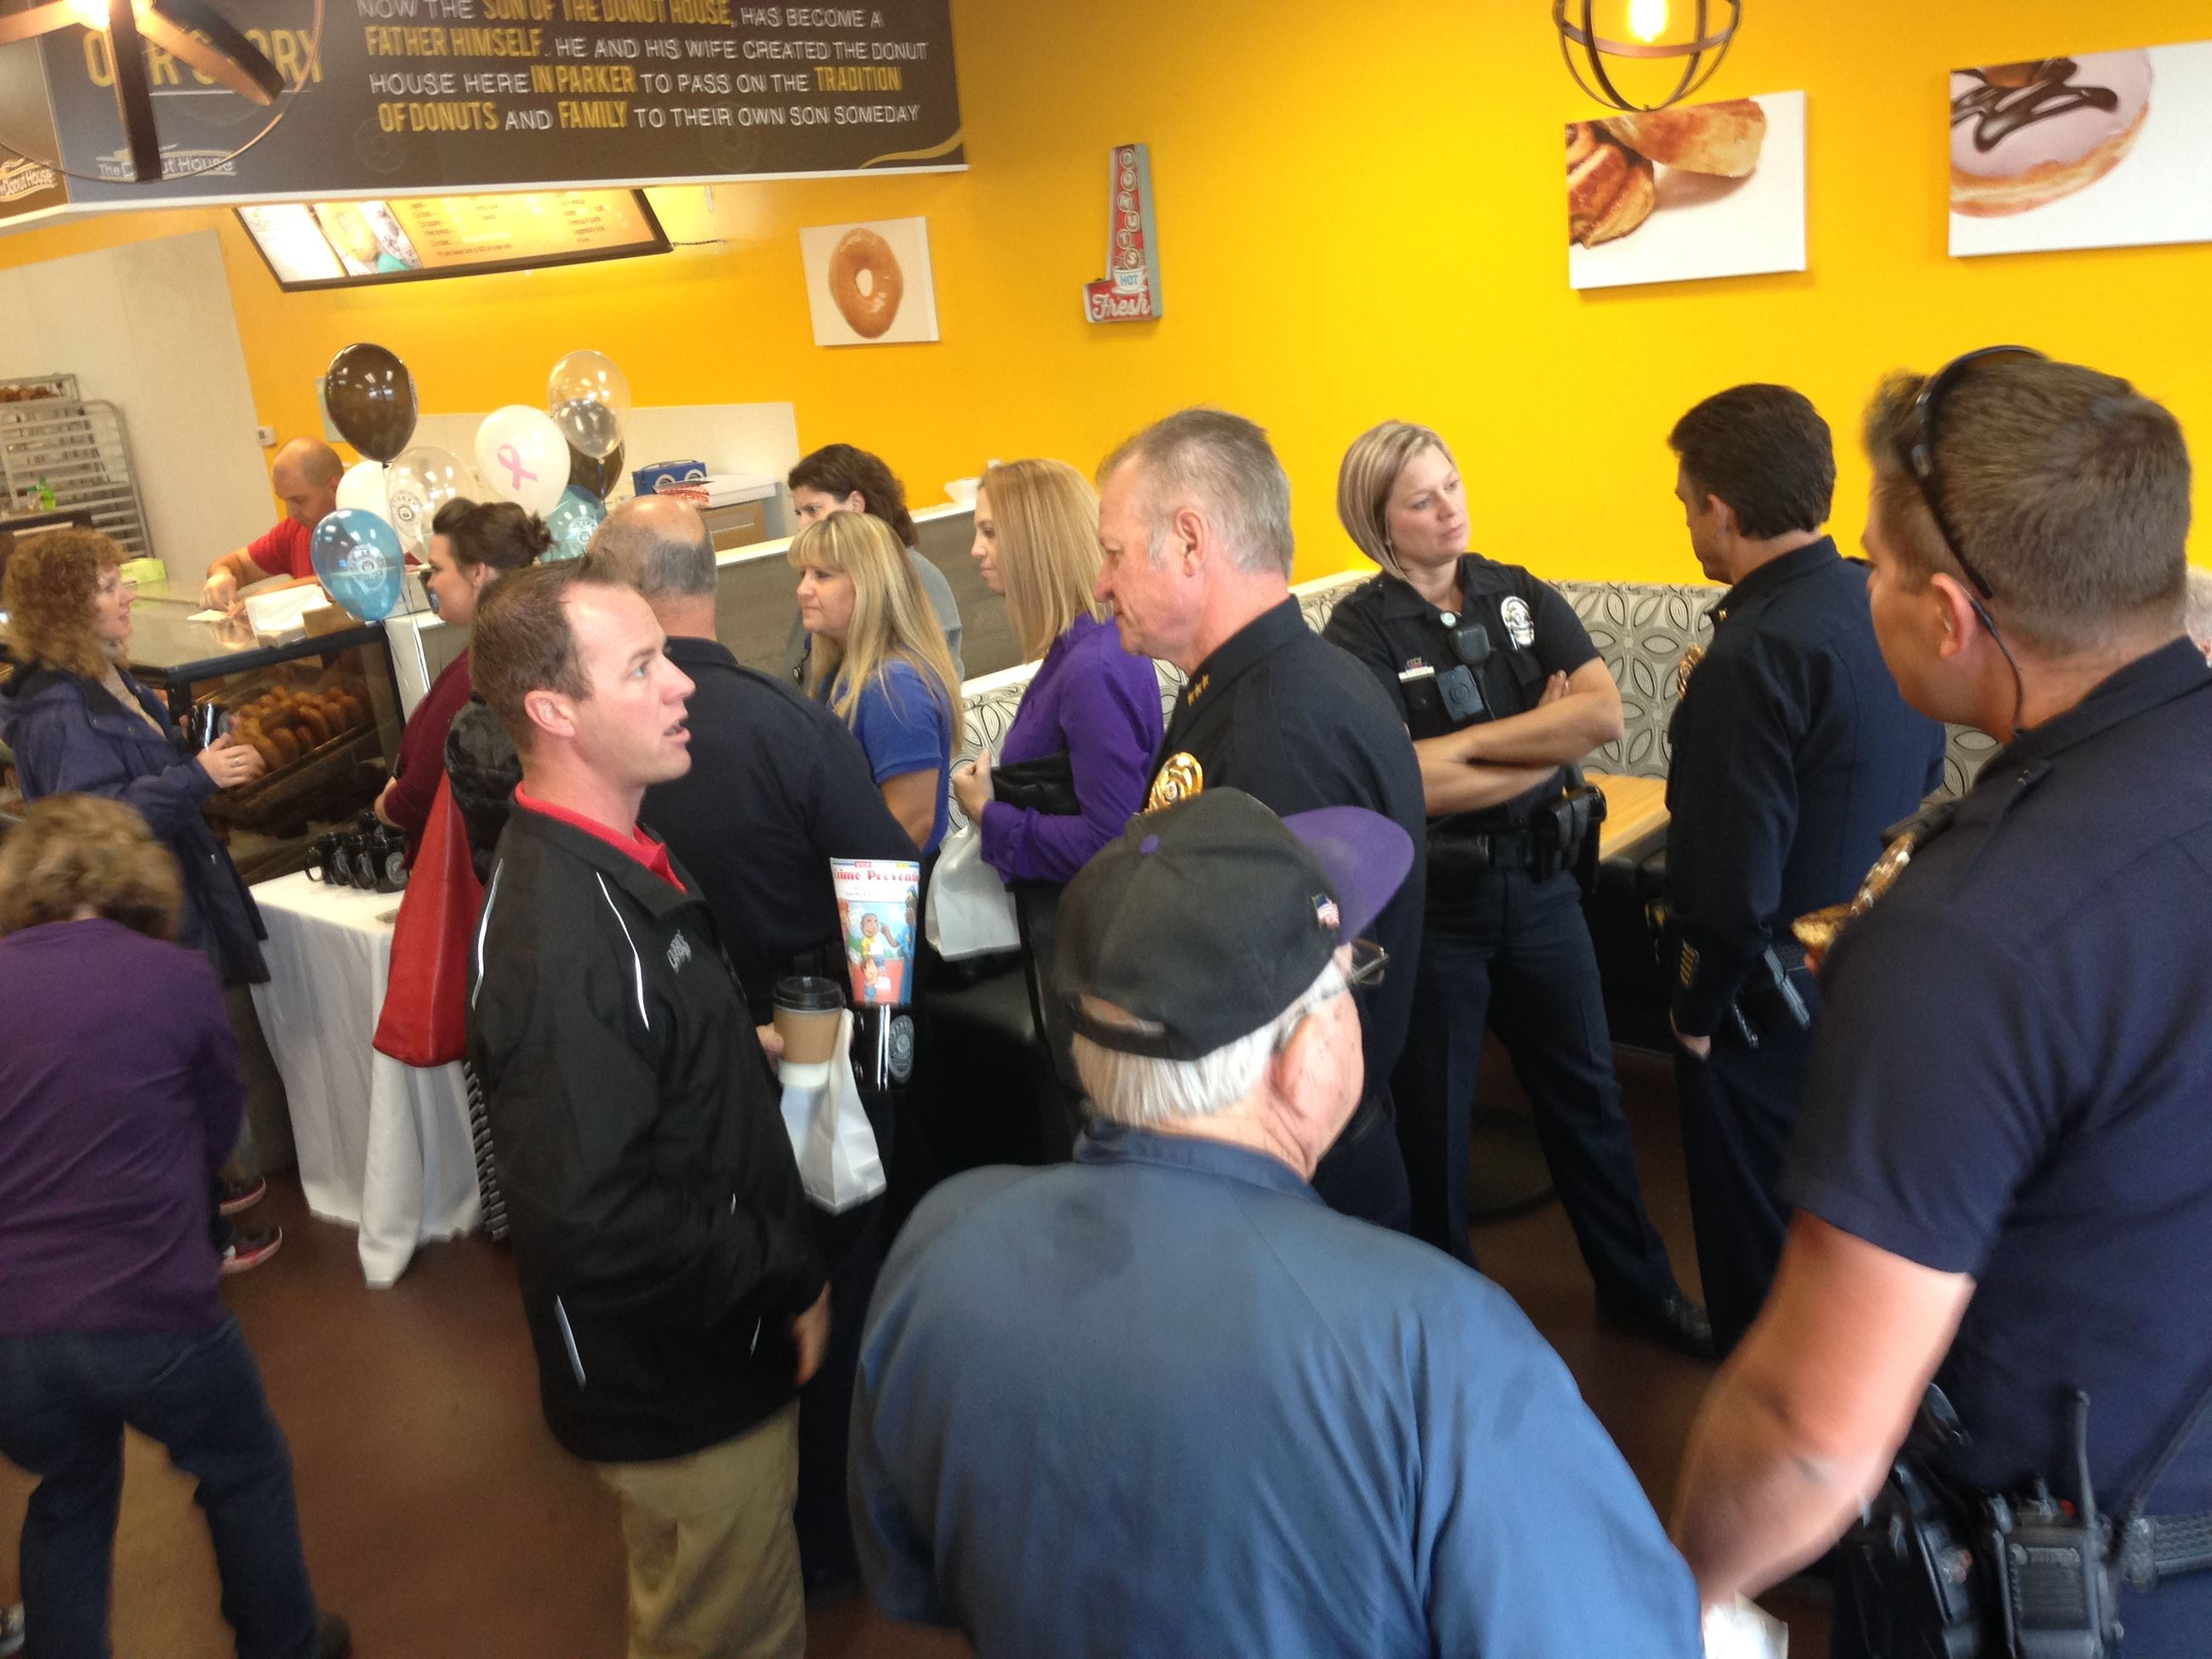 Officers talking with customers at the Donut House